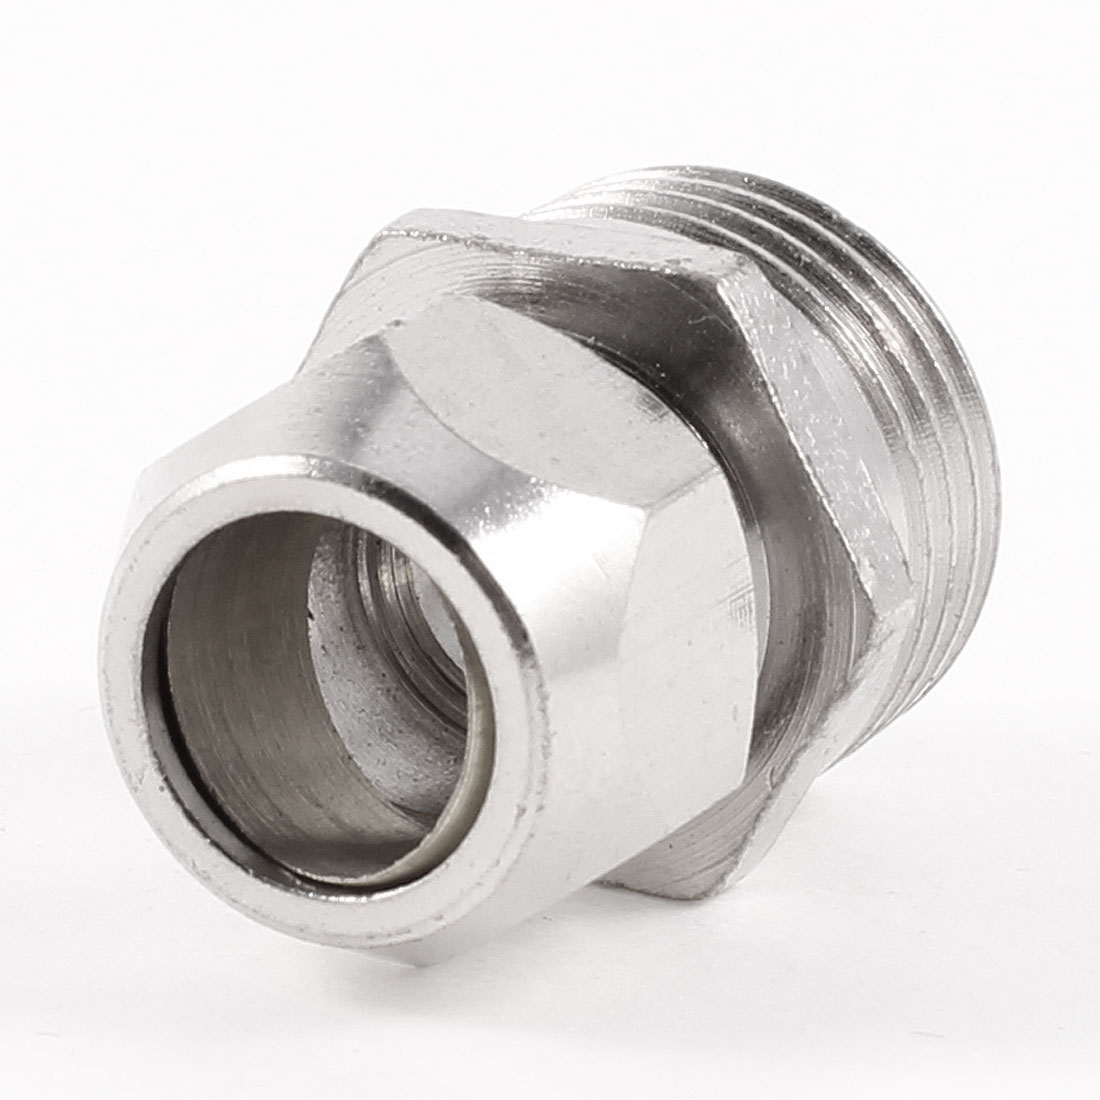 "1/2"" PT Male Threaded Hex Bushing Hydraulic Quick Adapter for 12mm Tube Pipe"